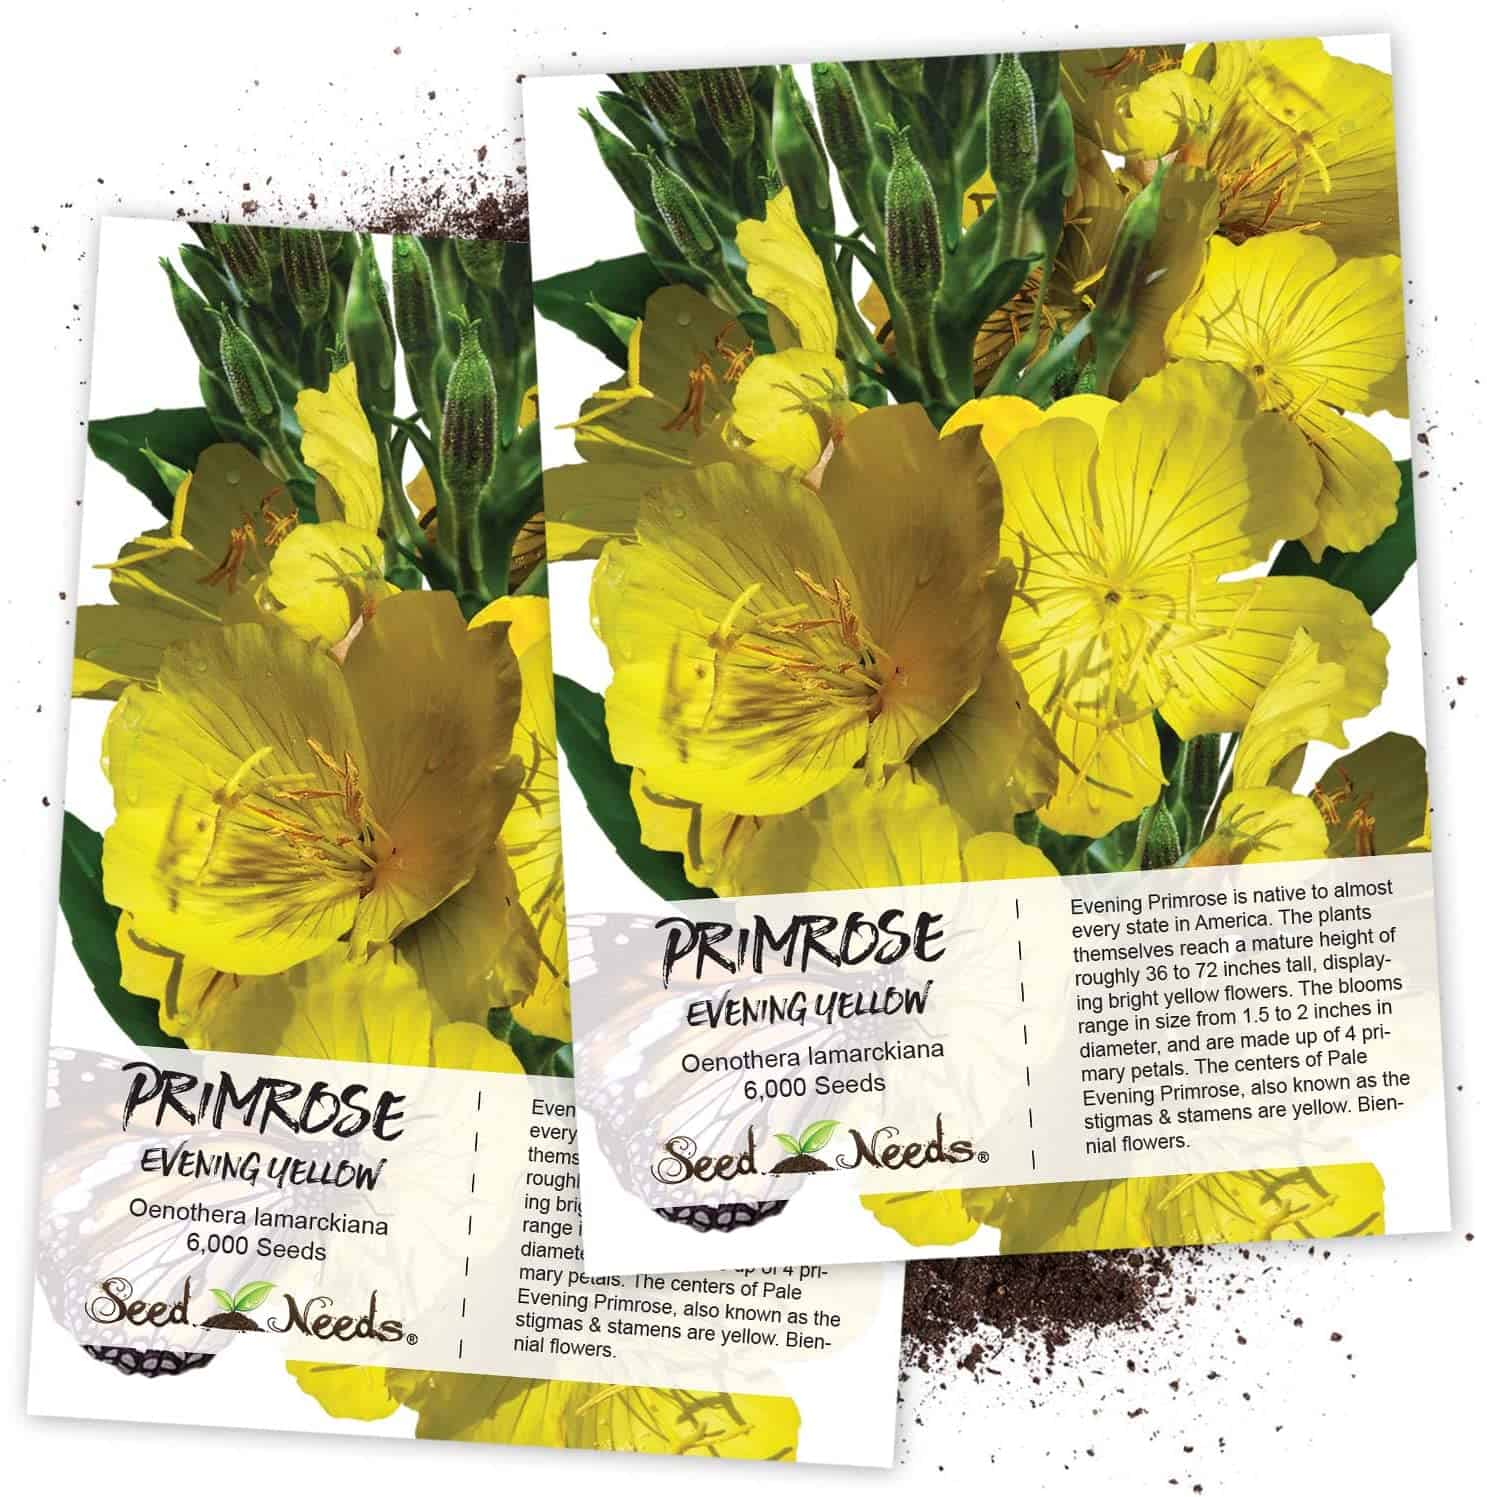 Evening Primrose (Oenothera lamarckiana) Twin Pack of 6,000 Seeds Each